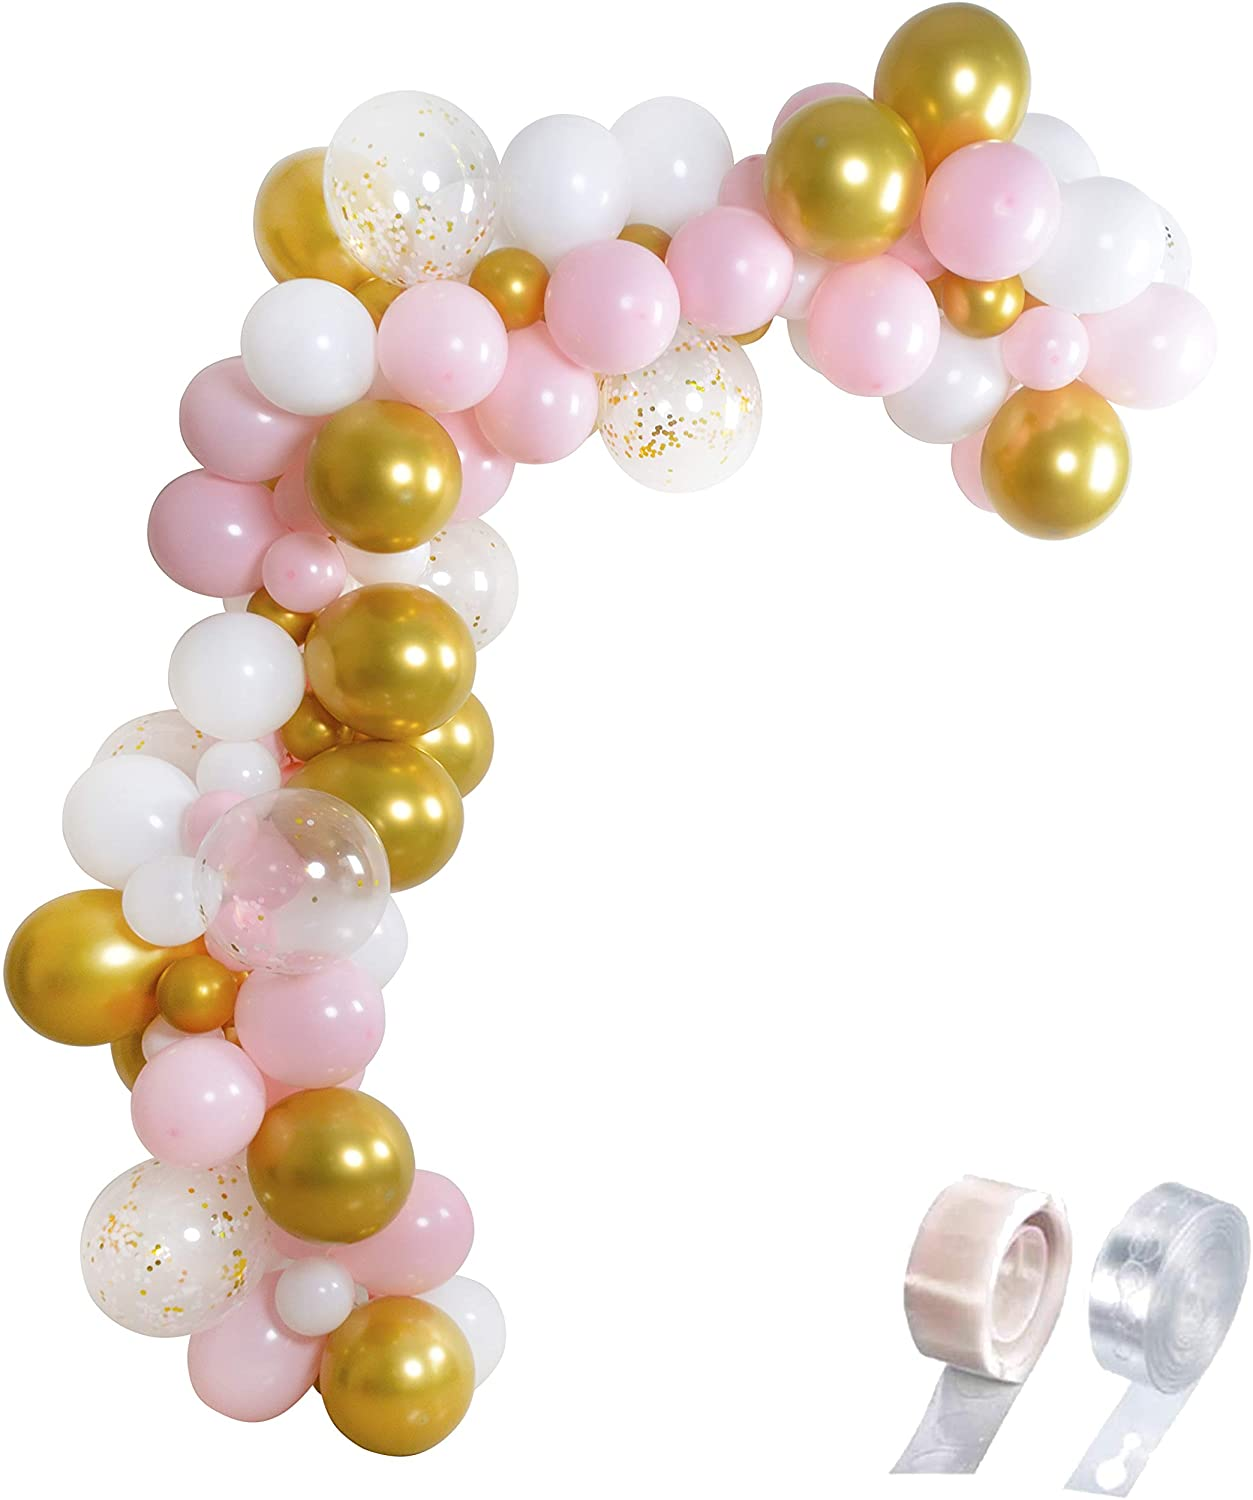 MOWO Balloon Arch Kit Gold Pink and White Balloon Garland DIY for Birthday Wedding Baby Shower Team Bride Valentine's Day New Year's Party Decoration,112pc